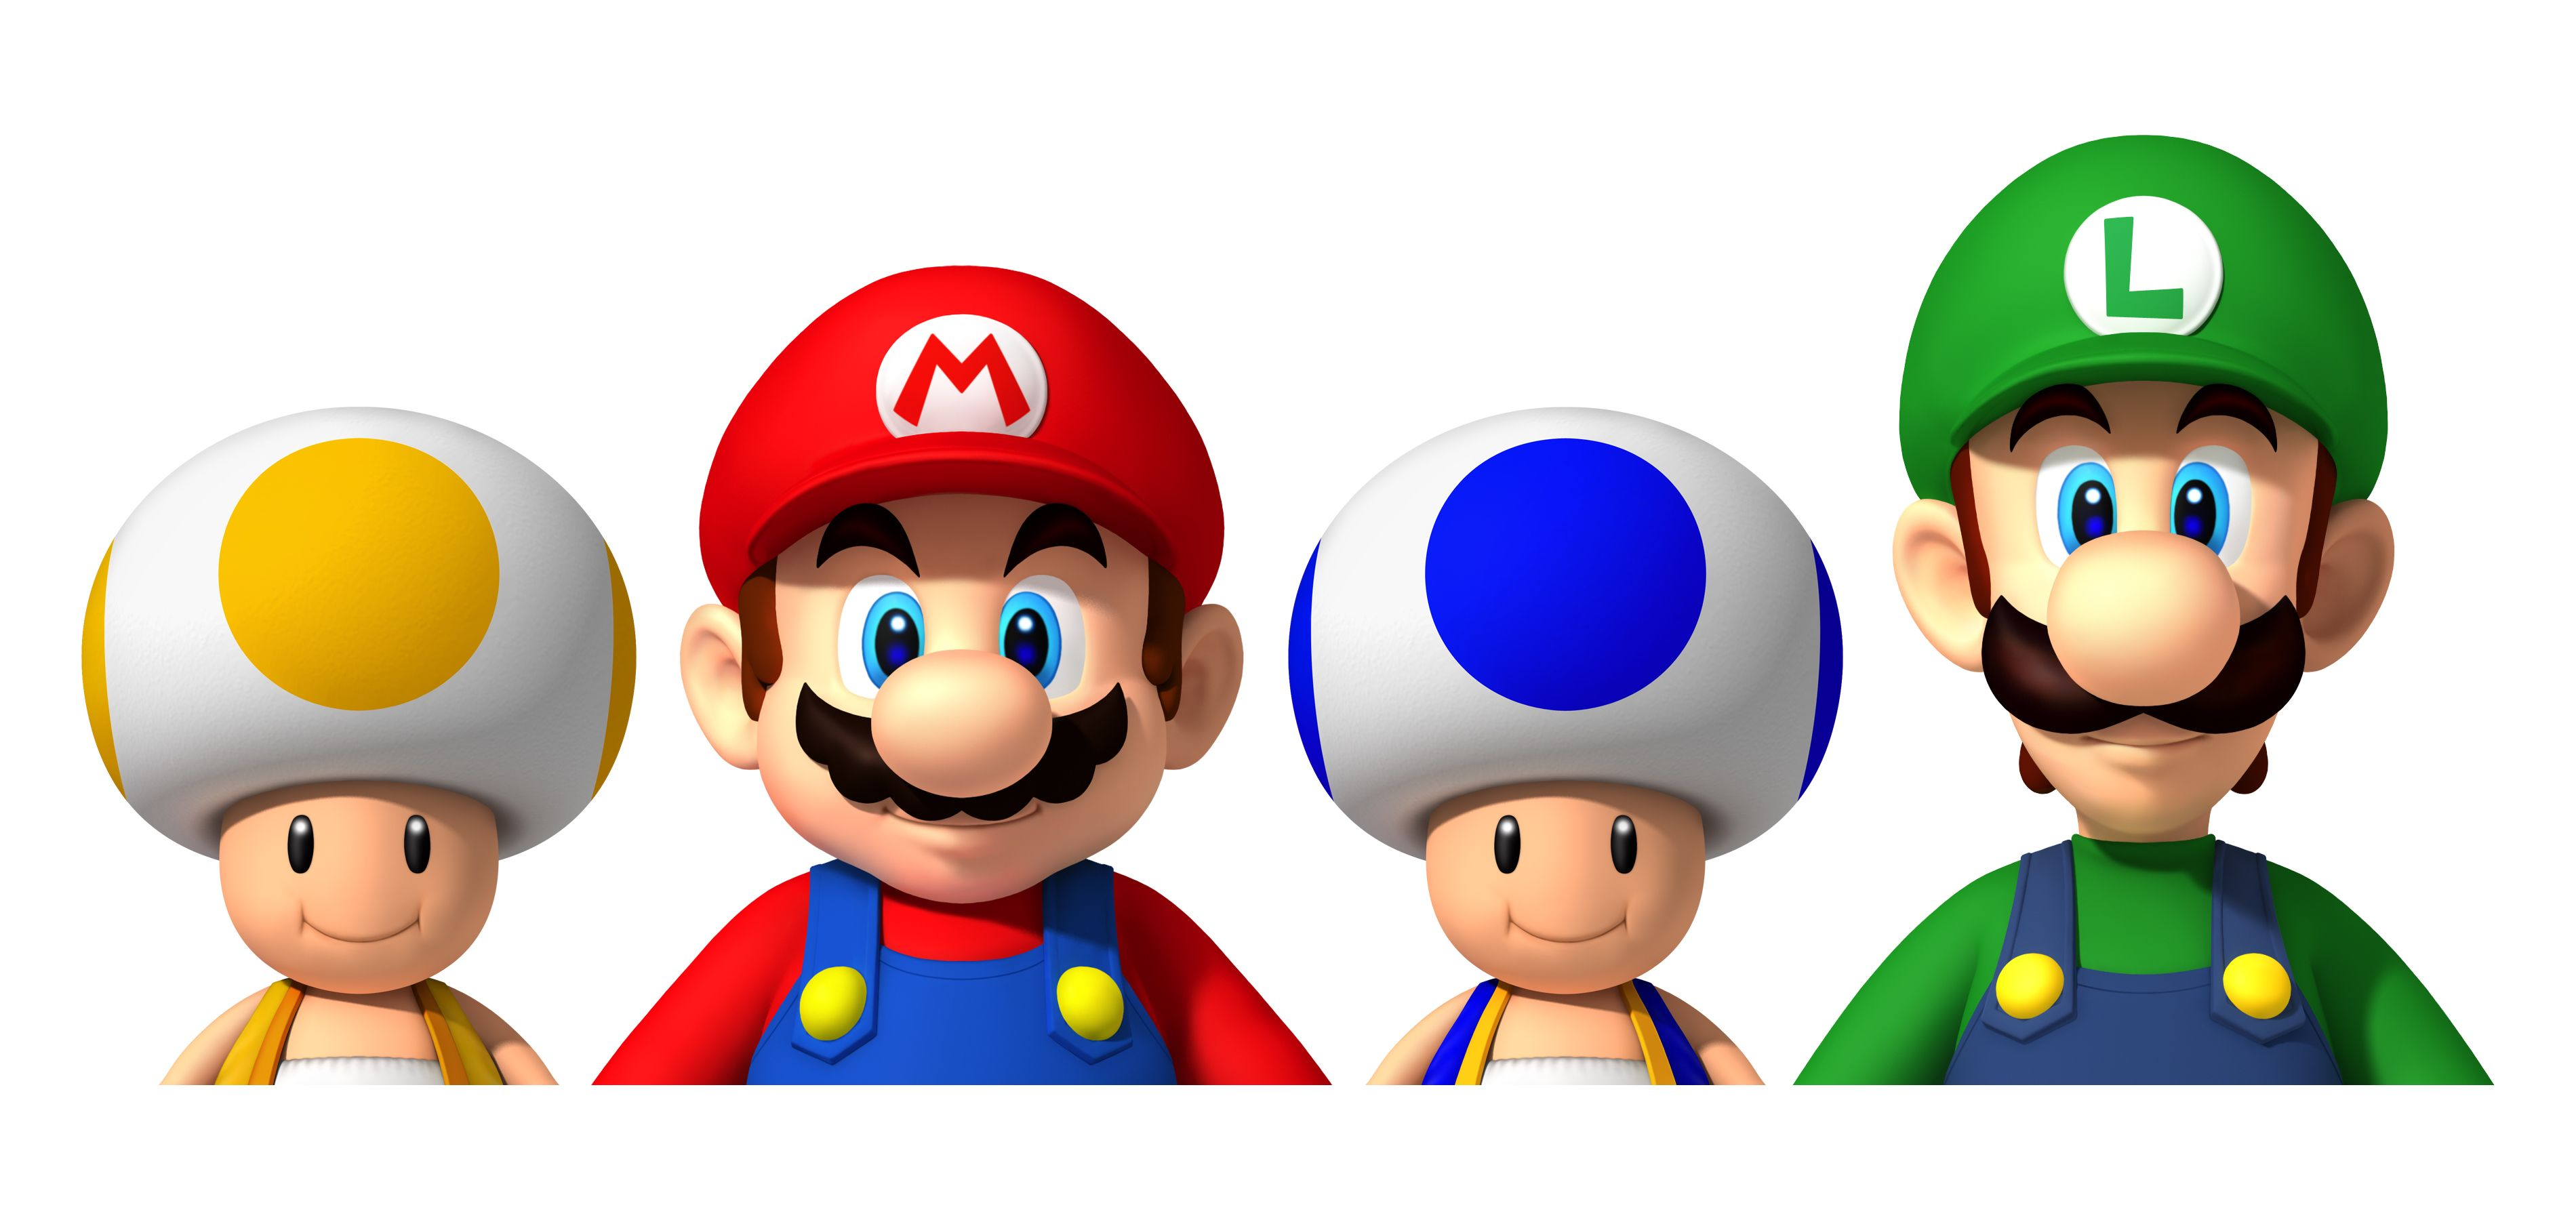 New Super Mario Bros Wii Characters Wallpaper Games Backgrounds